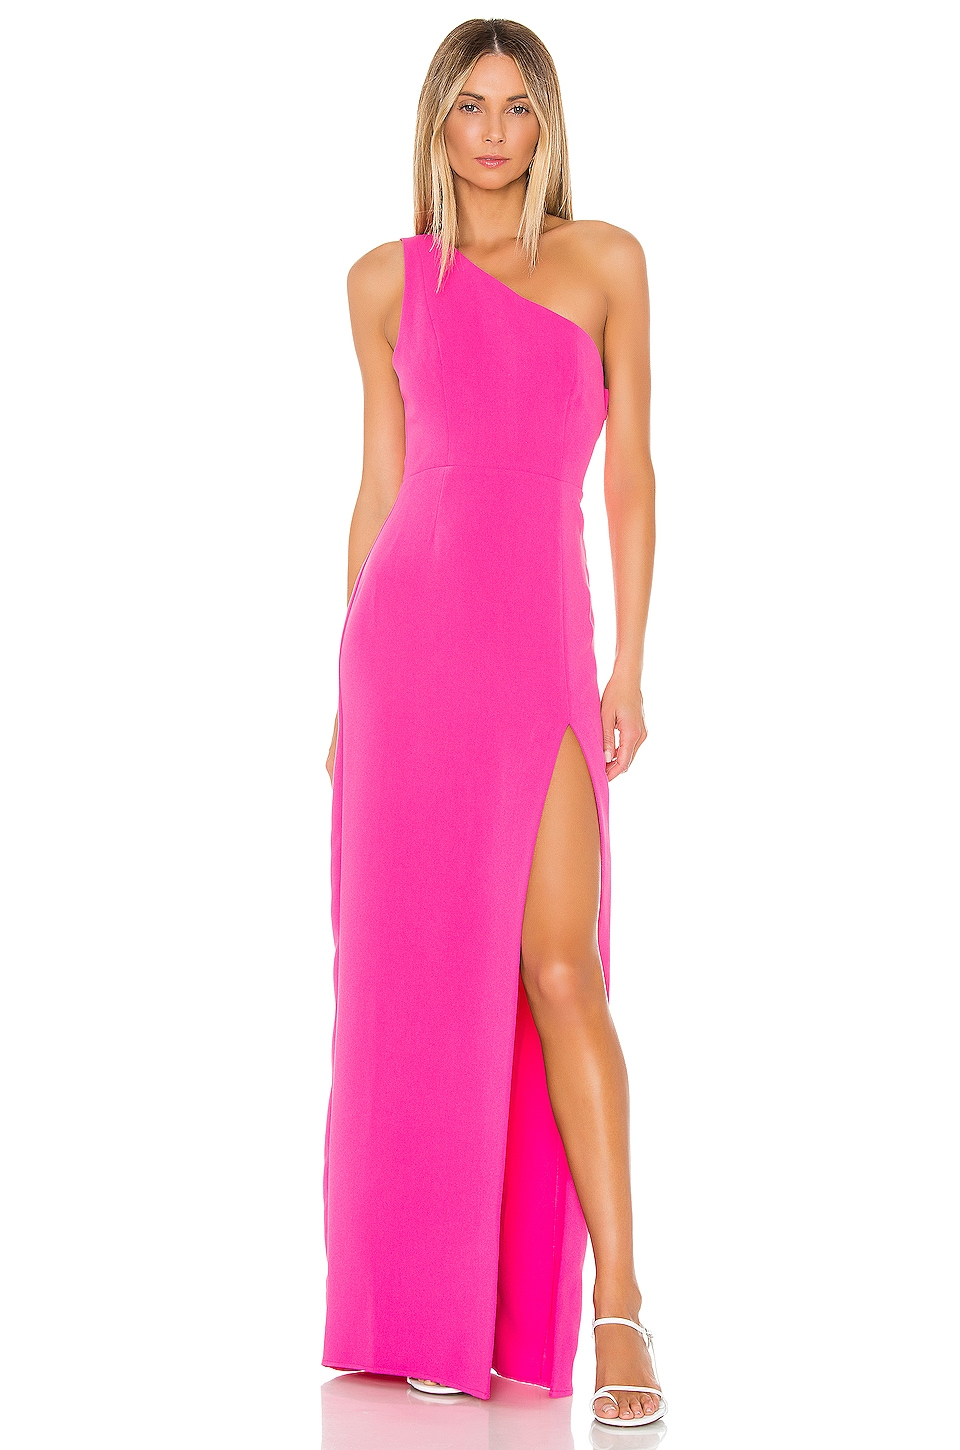 MAJORELLE Gia Gown in Hot Pink